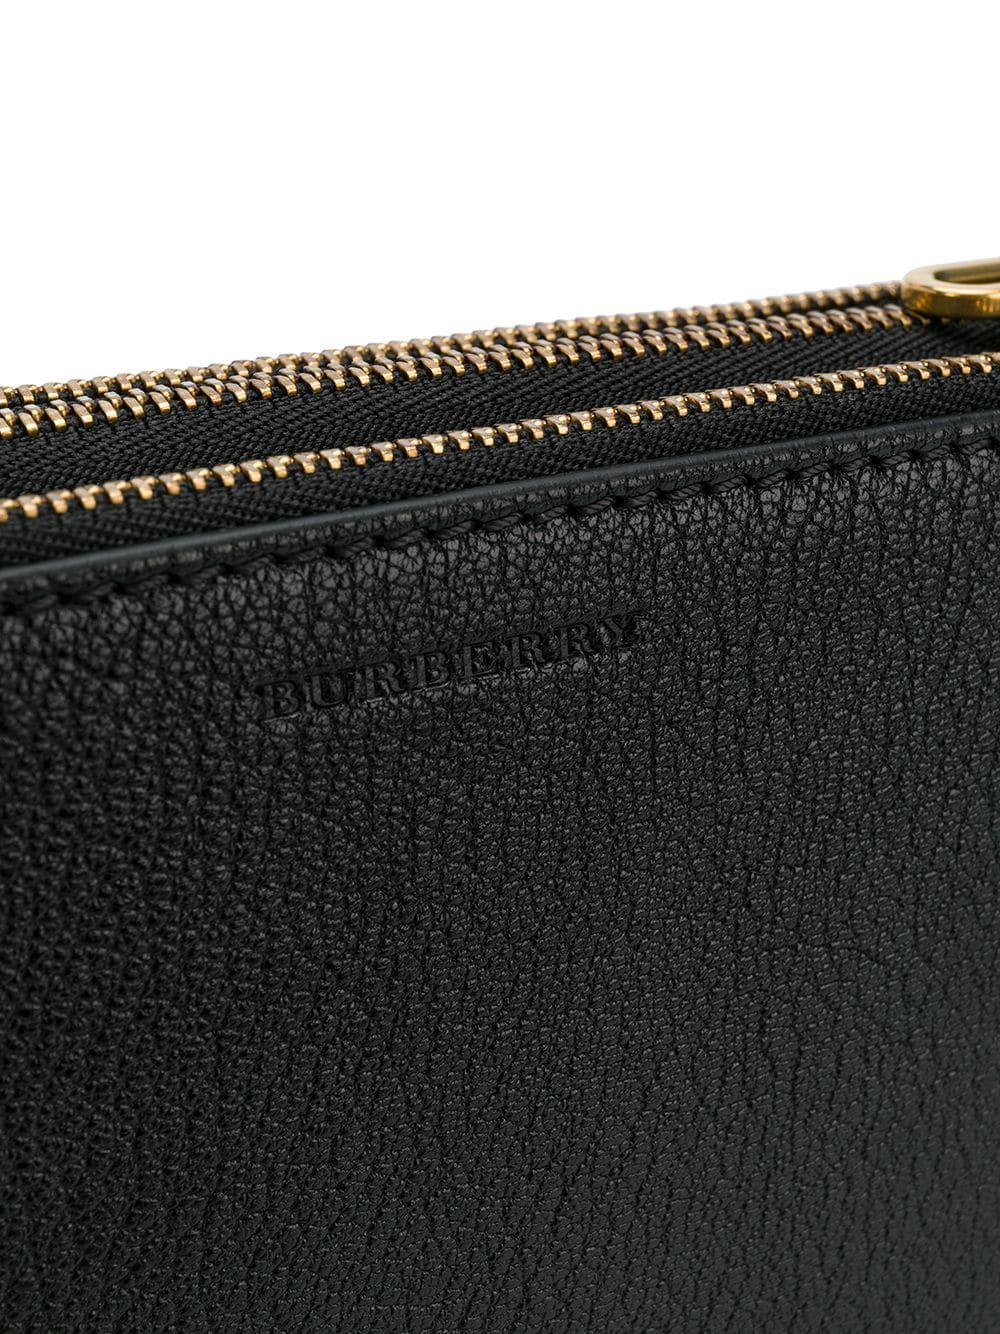 Burberry Leather 'trinity' Crossbody Bag in Black